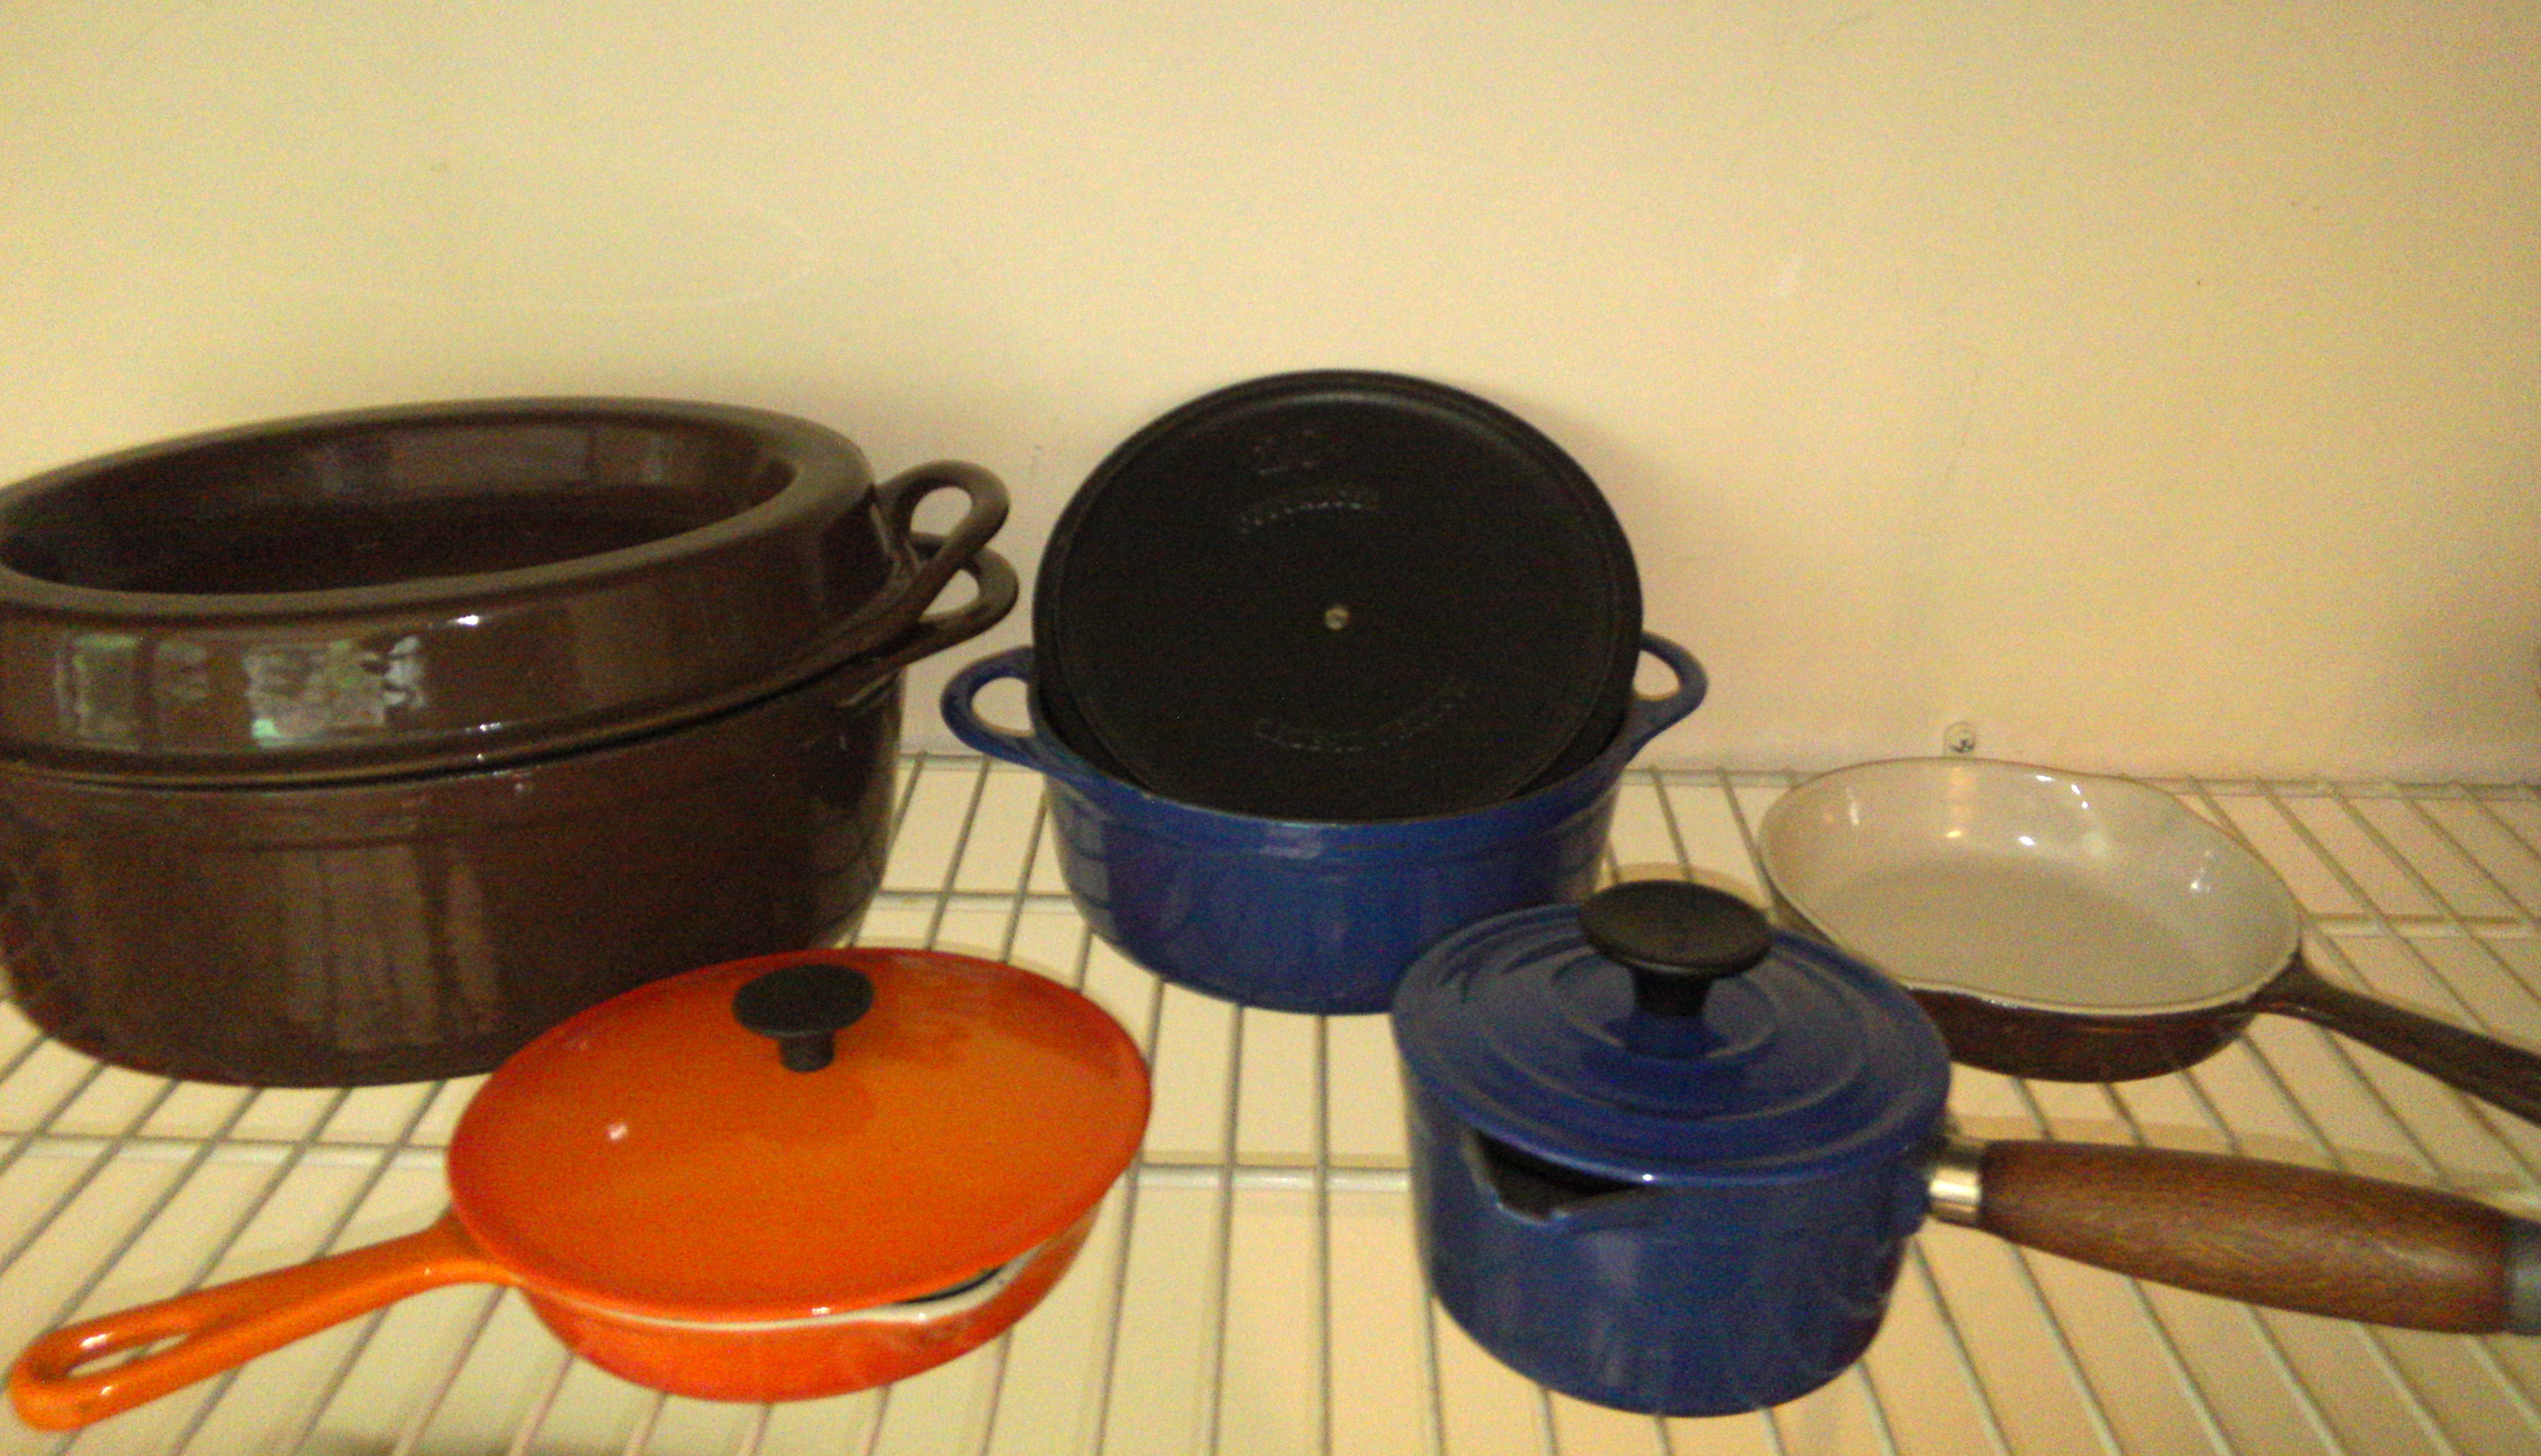 Co color cast cookware - Cousances Enameled Cast Iron Cookware From Left The Doufeu A Slow Cooking Pot Roaster Small Skillet Small Round Terrine Lipped Milkpan With Lid